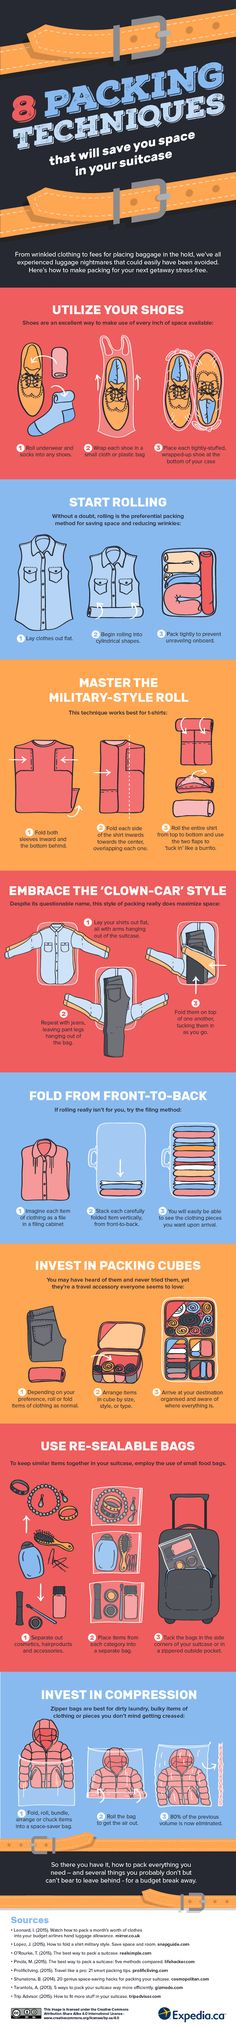 Packing Tips by expedia via lifeahacker #PAcking_Tips